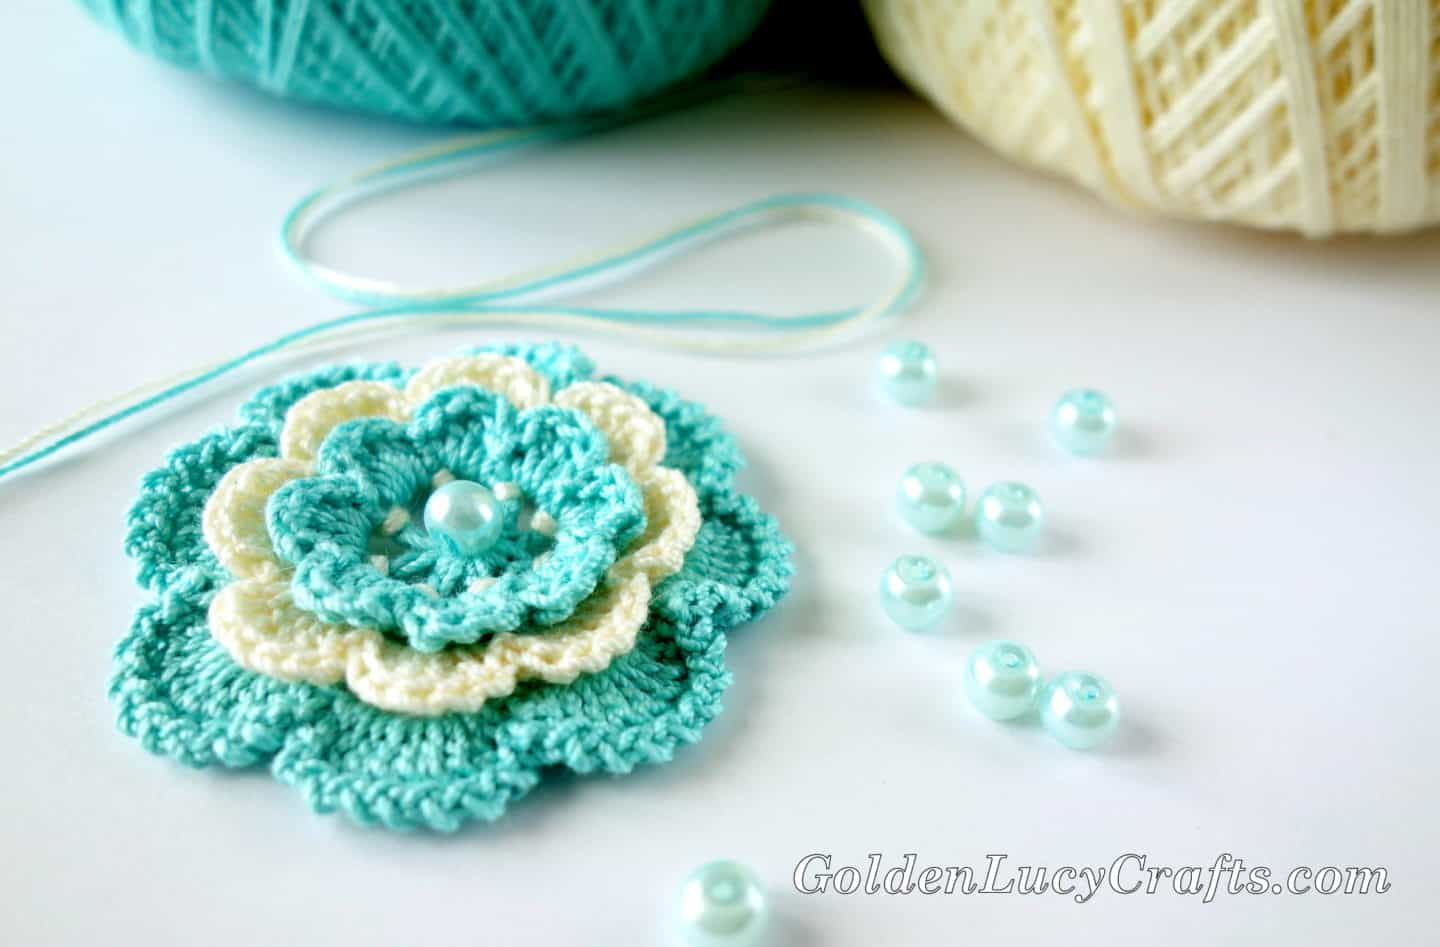 Crochet Irish Rose – Step by Step Instructions